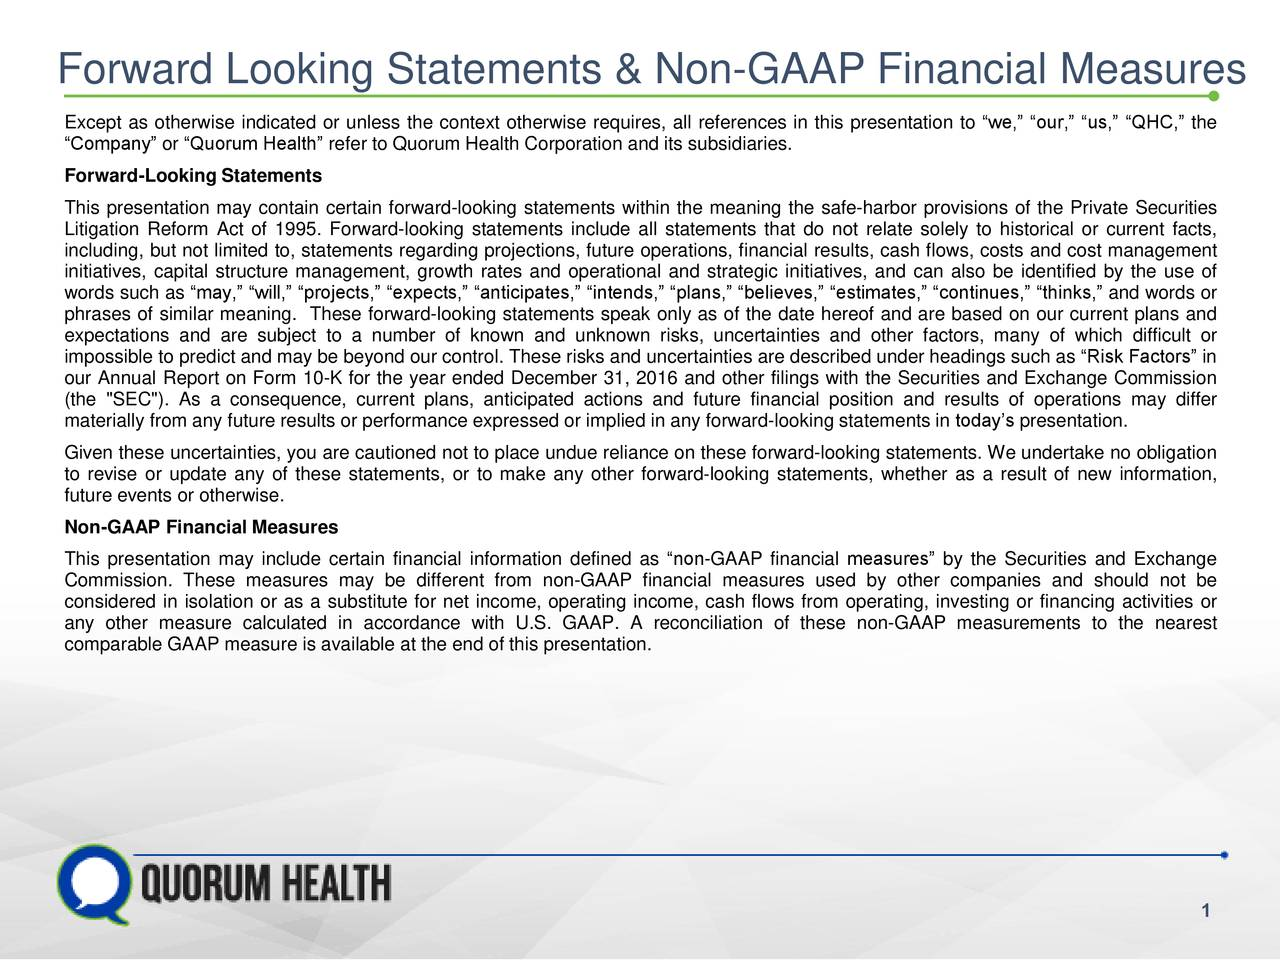 "76 203 189 147 237 67 Forward Looking Statements & Non-GAAP Financial Measures Except as otherwise indicated or unless the context otherwise requires, all references in this presentation to ""we,"" ""our,"" ""us,"" ""QHC,"" the 208 63 165 ""Company"" or ""Quorum Health"" refer to Quorum Health Corporation and its subsidiaries. Forward-Looking Statements 235 63 165 179 63 165 This presentation may contain certain forward-looking statements within the meaning the safe-harbor provisions of the Private Securities Litigation Reform Act of 1995. Forward-looking statements include all statements that do not relate solely to historical or current facts, including, but not limited to, statements regarding projections, future operations, financial results, cash flows, costs and cost management initiatives, capital structure management, growth rates and operational and strategic initiatives, and can also be identified by the use of words such as ""may,"" ""will,"" ""projects,"" ""expects,"" ""anticipates,"" ""intends,"" ""plans,"" ""believes,"" ""estimates,"" ""continues,"" ""thinks,"" and words or phrases of similar meaning. These forward-looking statements speak only as of the date hereof and are based on our current plans and expectations and are subject to a number of known and unknown risks, uncertainties and other factors, many of which difficult or impossible to predict and may be beyond our control. These risks and uncertainties are described under headings such as ""Risk Factors"" in our Annual Report on Form 10-K for the year ended December 31, 2016 and other filings with the Securities and Exchange Commission (the ""SEC""). As a consequence, current plans, anticipated actions and future financial position and results of operations may differ materially from any future results or performance expressed or implied in any forward-looking statements in today's presentation. Given these uncertainties, you are cautioned not to place undue reliance on these forward-looking statements. We undertake no obligation to revise or update any of these statements, or to make any other forward‐looking statements, whether as a result of new information, future events or otherwise. Non-GAAP Financial Measures This presentation may include certain financial information defined as ""non-GAAP financial measures"" by the Securities and Exchange Commission. These measures may be different from non-GAAP financial measures used by other companies and should not be considered in isolation or as a substitute for net income, operating income, cash flows from operating, investing or financing activities or any other measure calculated in accordance with U.S. GAAP. A reconciliation of these non-GAAP measurements to the nearest comparable GAAP measure is available at the end of this presentation."